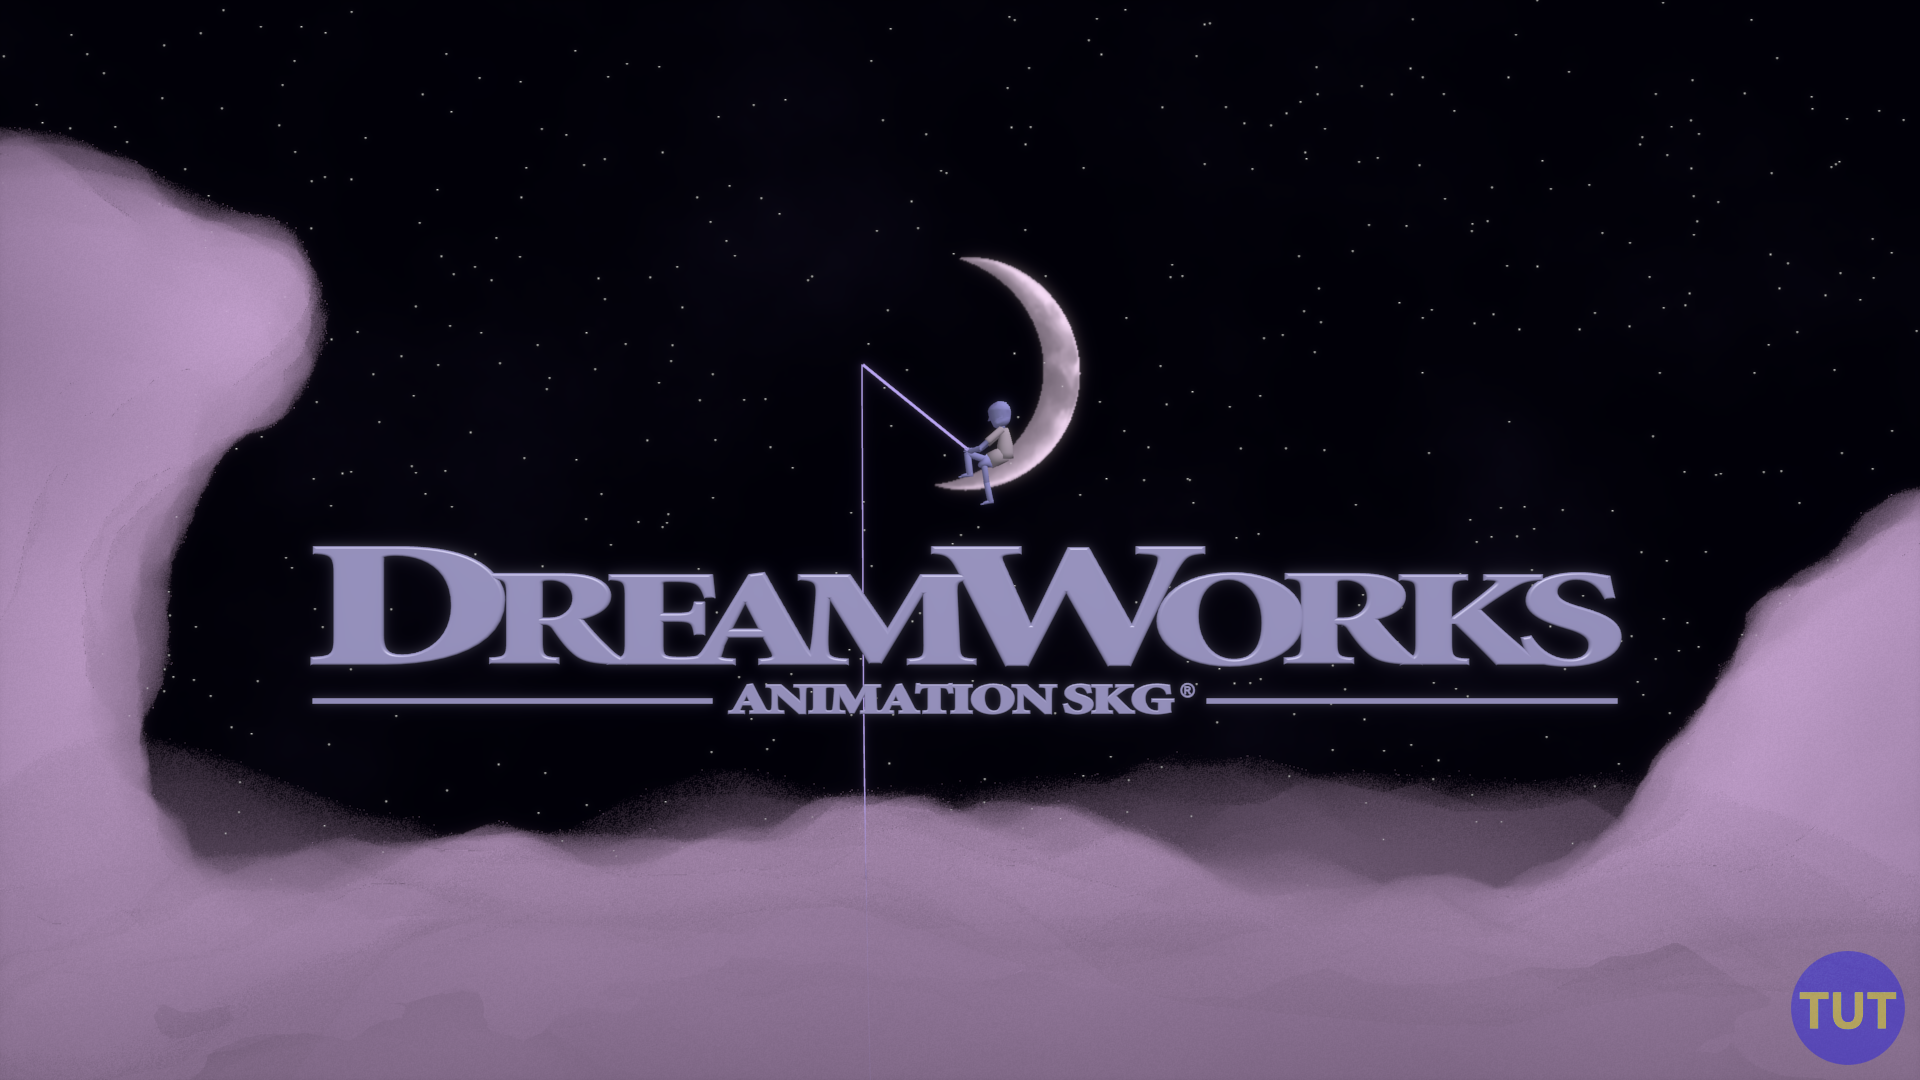 dreamworks animation 2010 logo updated remake by